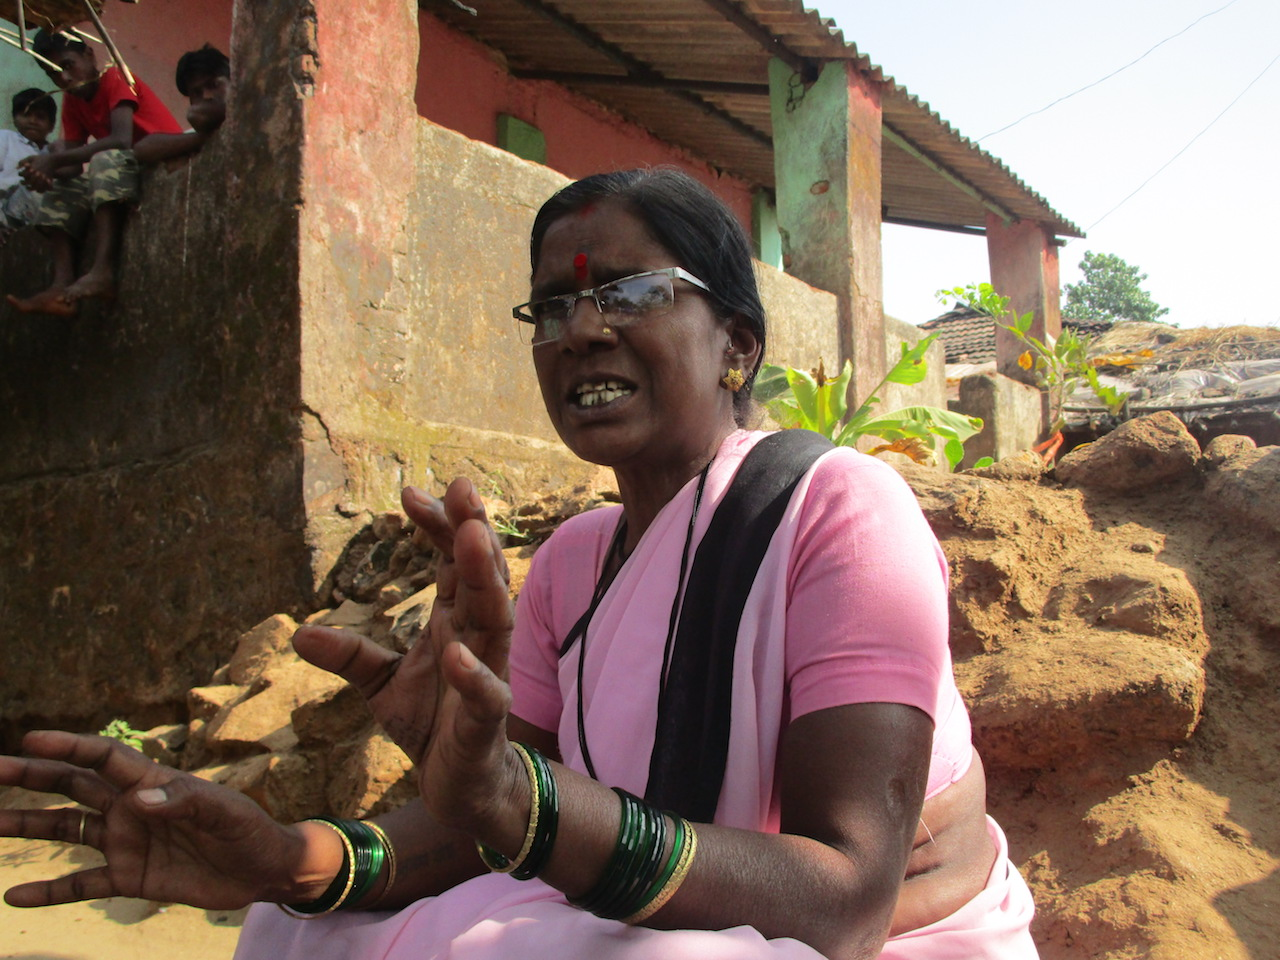 Anusya Ramesh Lakhar who has been running the aanganwadi at Siwali village for the last 30 years. (Photo: Nidhi Jamwal)